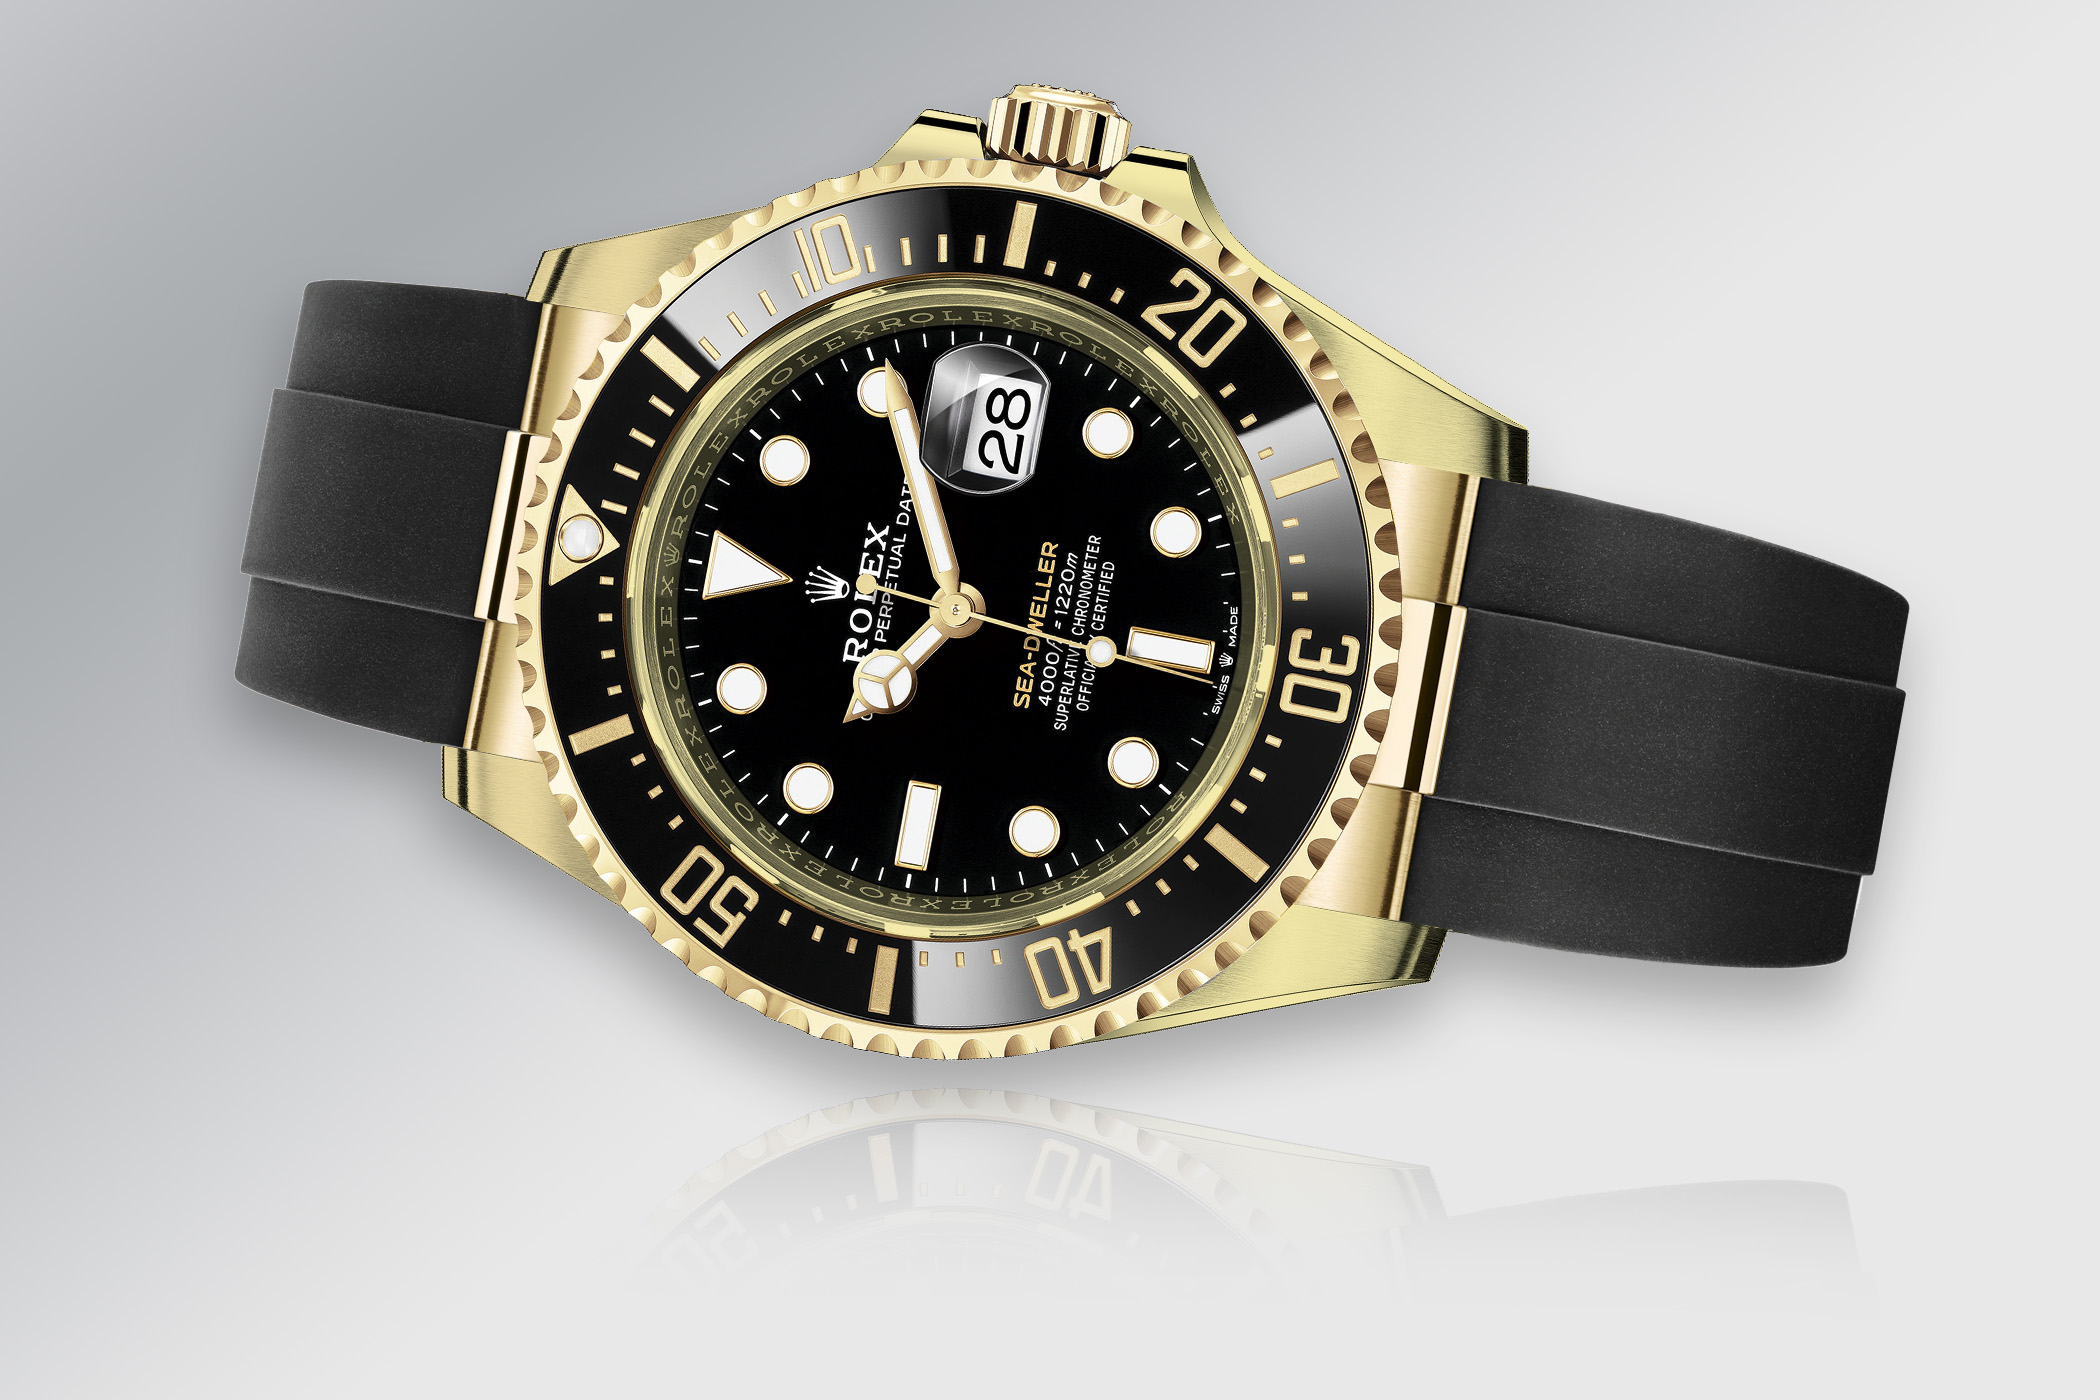 Rolex Predictions 2021 - Rolex New models 2021 - Rolex Sea-Dweller 43mm Yellow Gold Oysterflex 126608